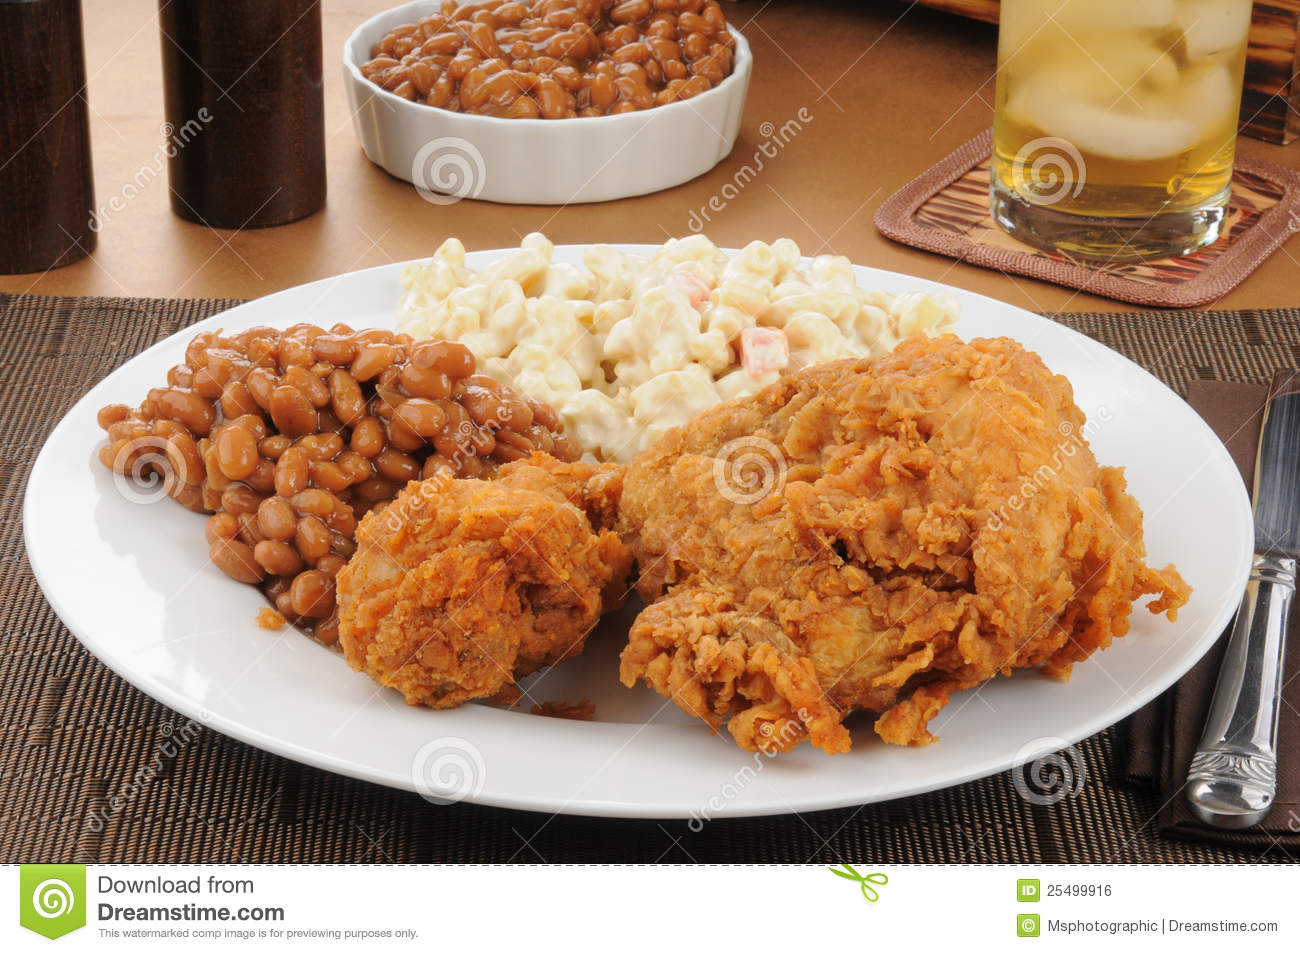 Chicken And Boston Baked Beans Royalty Free Stock Image   Image